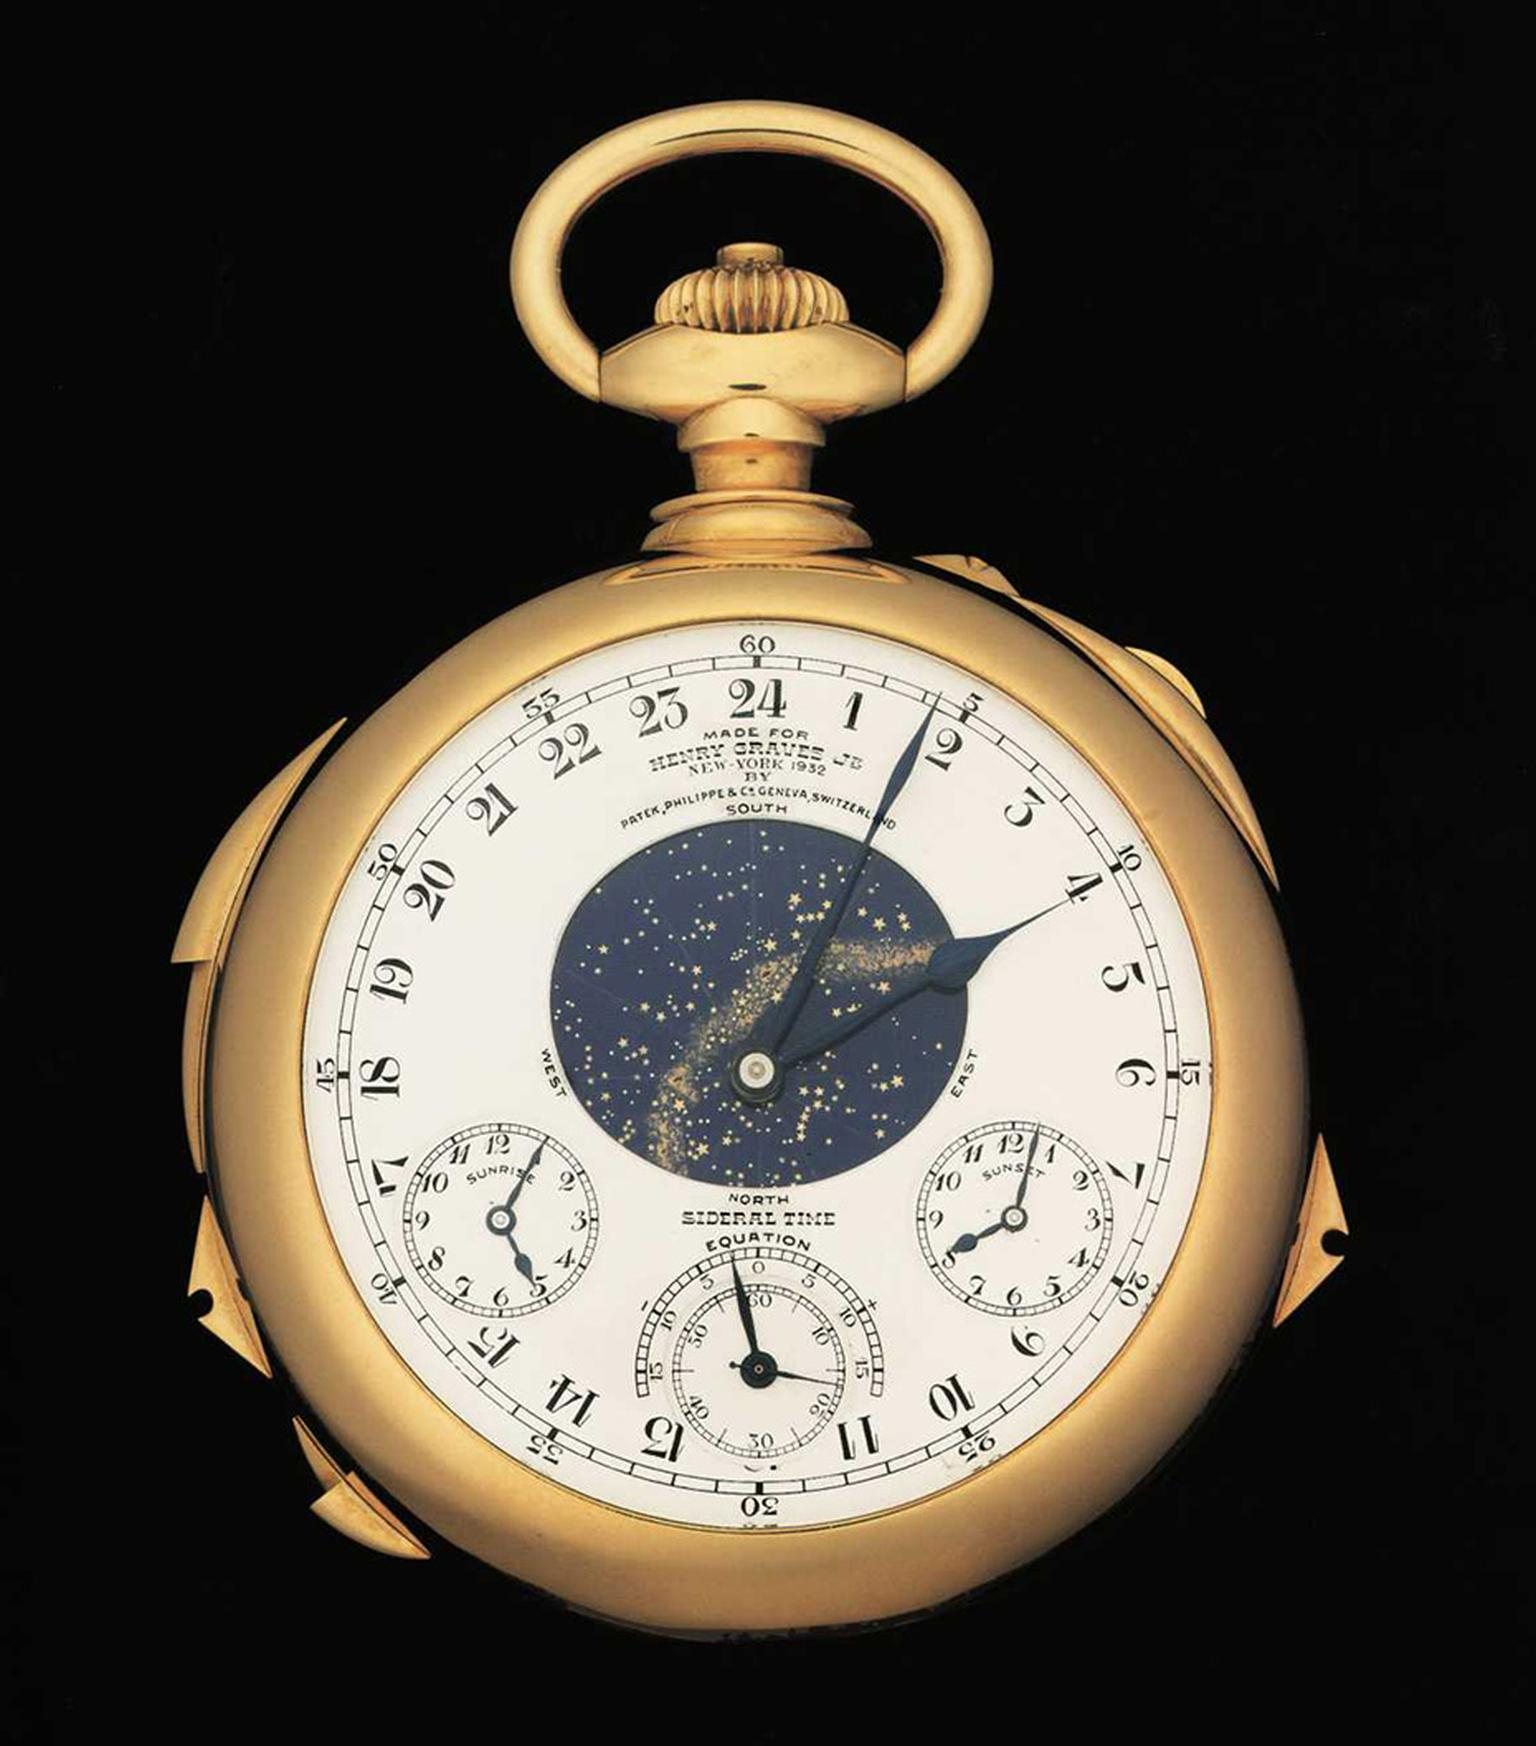 Created by Patek Philippe in 1933 and known as the Mona Lisa of watches, the Henry Graves Supercomplication is a masterpiece of horology with no fewer than 24 complications. It goes under the hammer at Sotheby's Geneva on 11 November 2014.